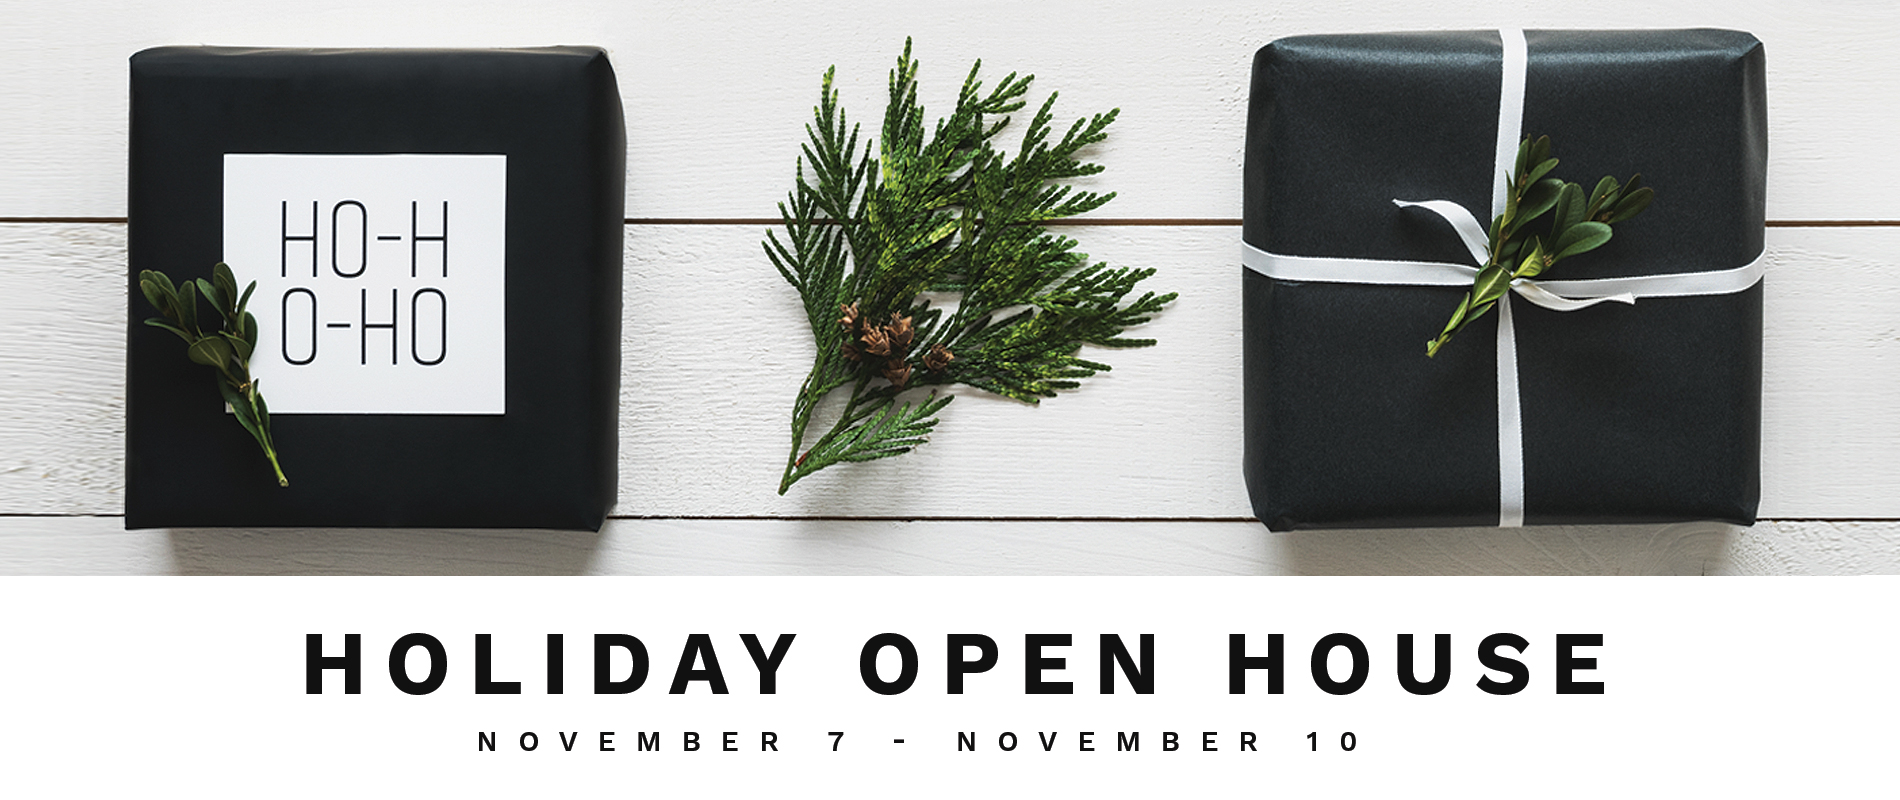 accents + interiors 2019 Holiday Open House